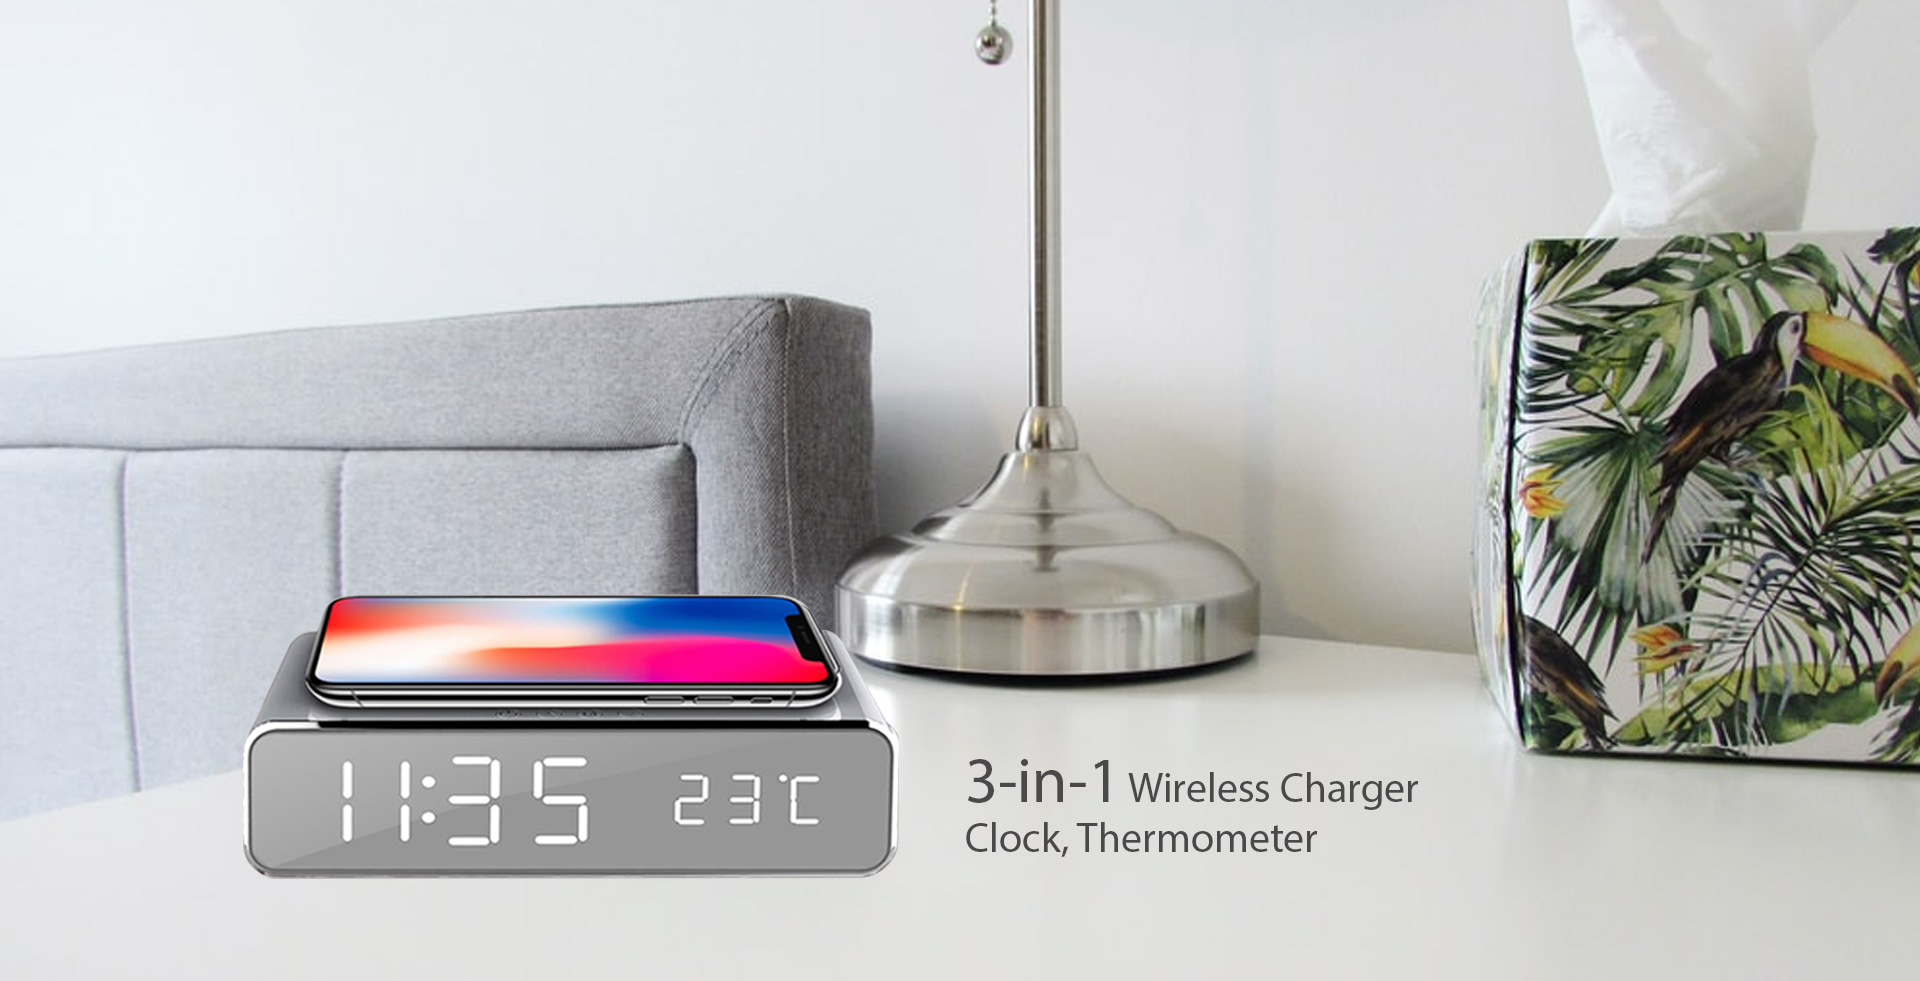 3-in-1 Clock, wireless charger, and thermometer. A convenient clock for your home, bedside to stay organized and clean.